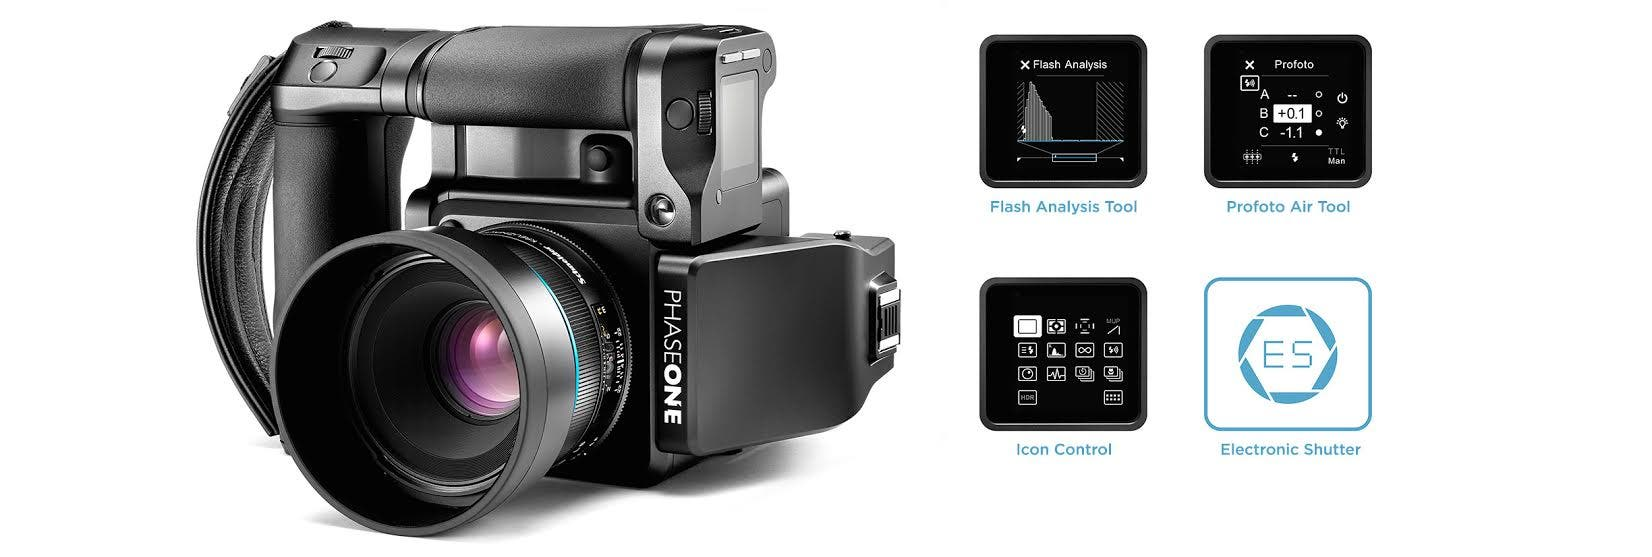 Phase One's XF Cameras Can Now Control Profoto Air Lights In-Camera